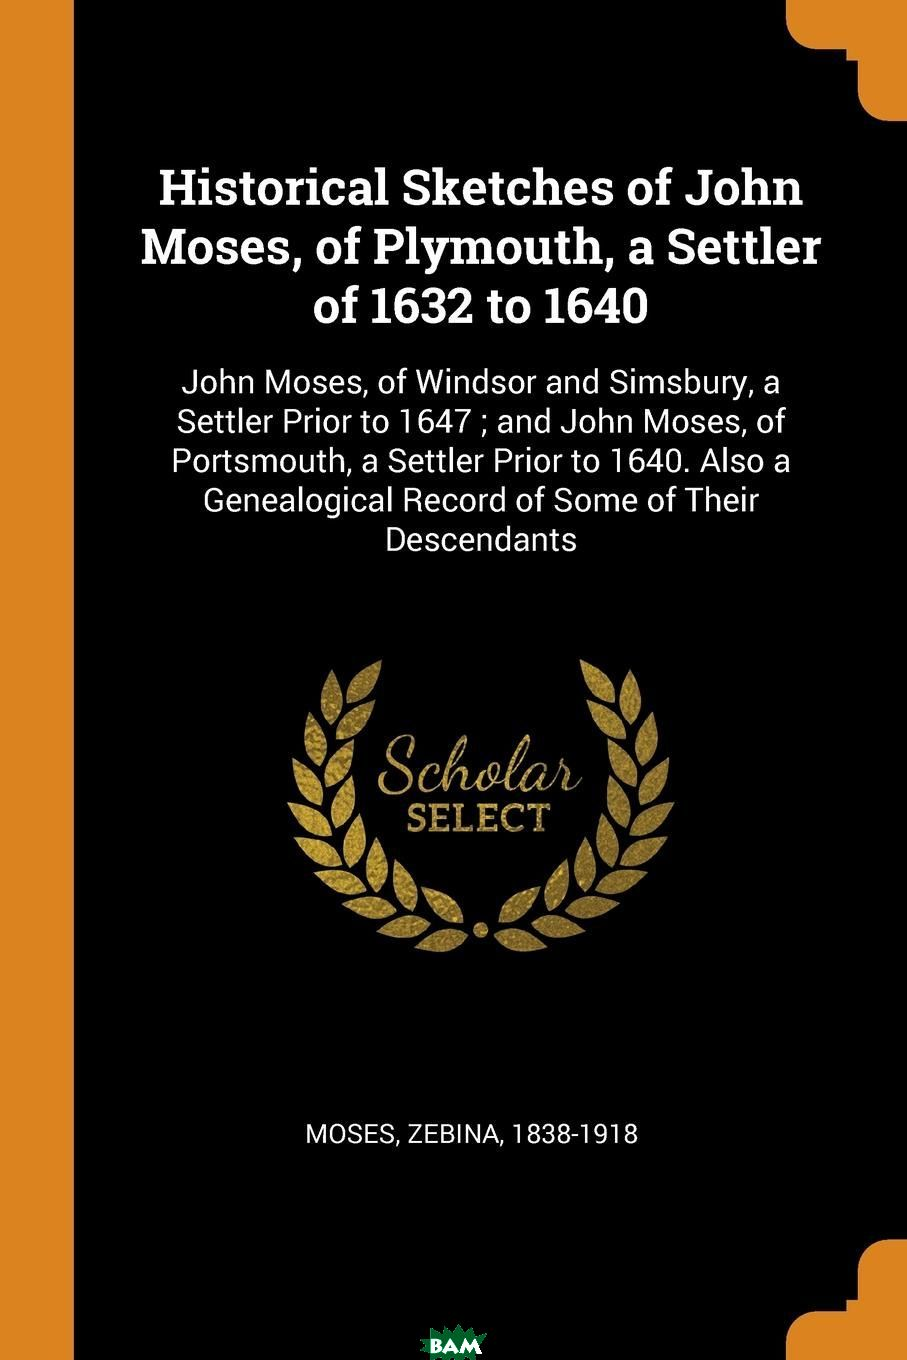 Купить Historical Sketches of John Moses, of Plymouth, a Settler of 1632 to 1640. John Moses, of Windsor and Simsbury, a Settler Prior to 1647 ; and John Moses, of Portsmouth, a Settler Prior to 1640. Also, Moses Zebina 1838-1918, 9780353156029